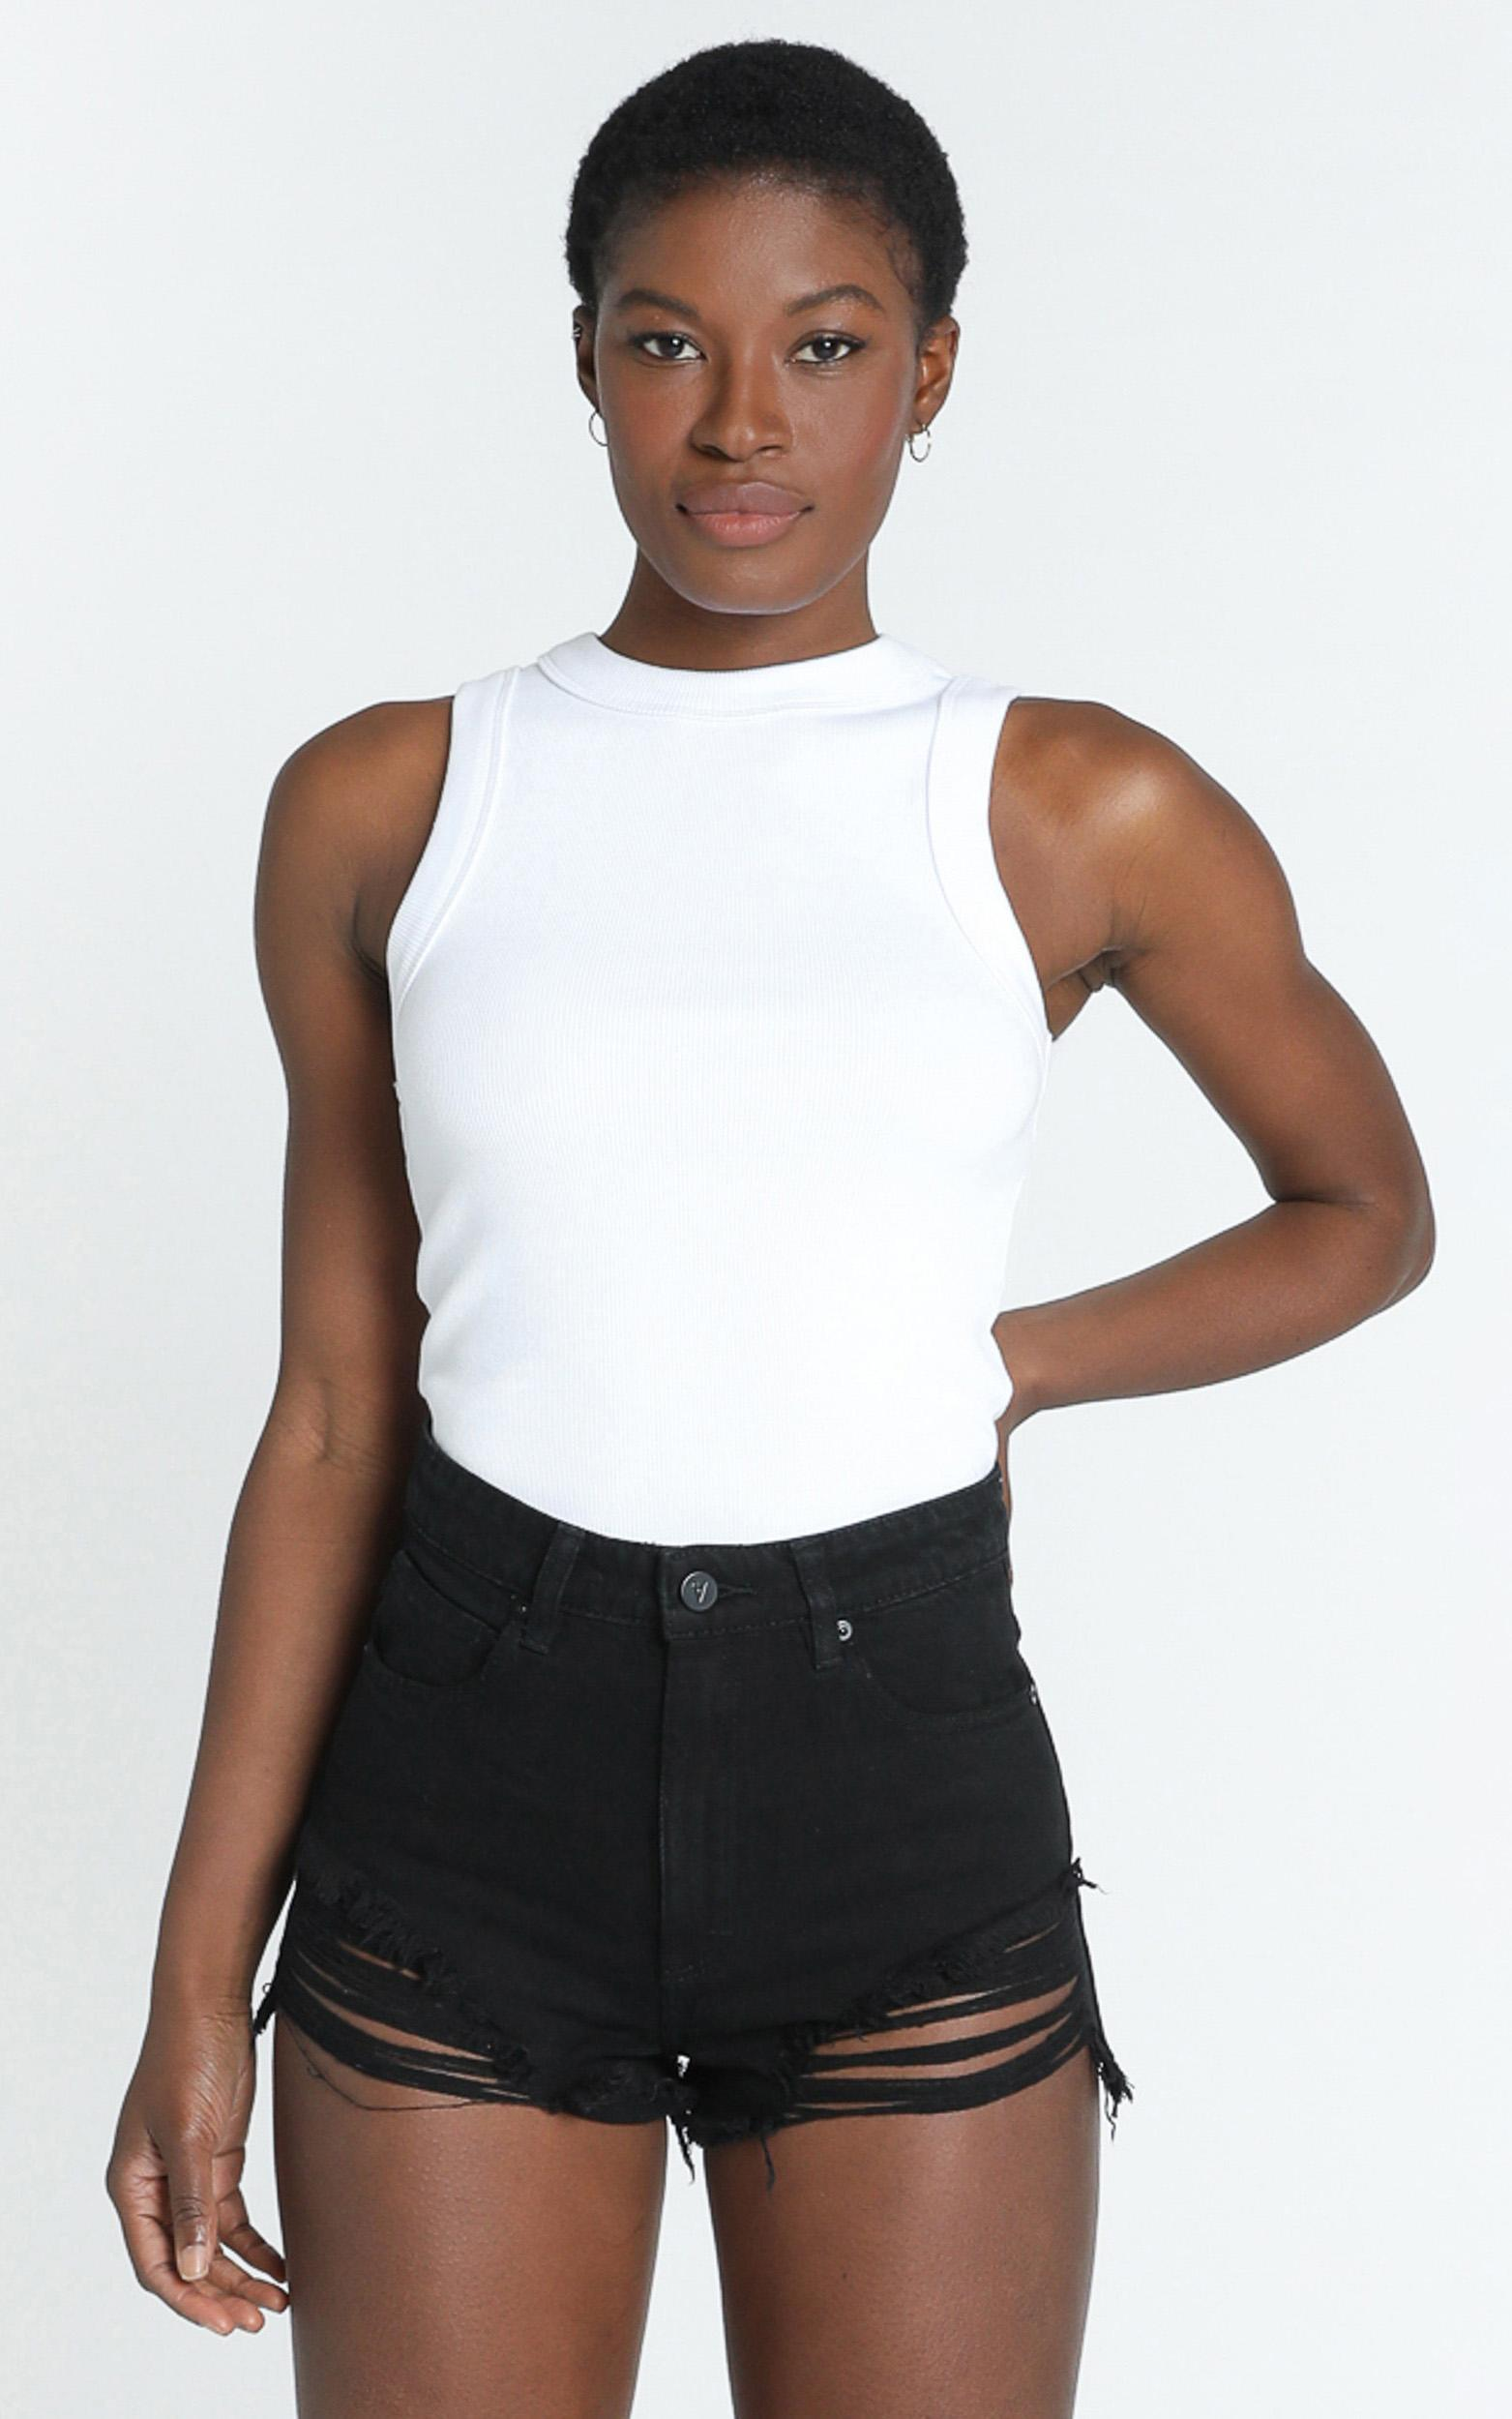 Abrand - A High Relaxed Denim Shorts in salty black - 6 (XS), BLK1, hi-res image number null